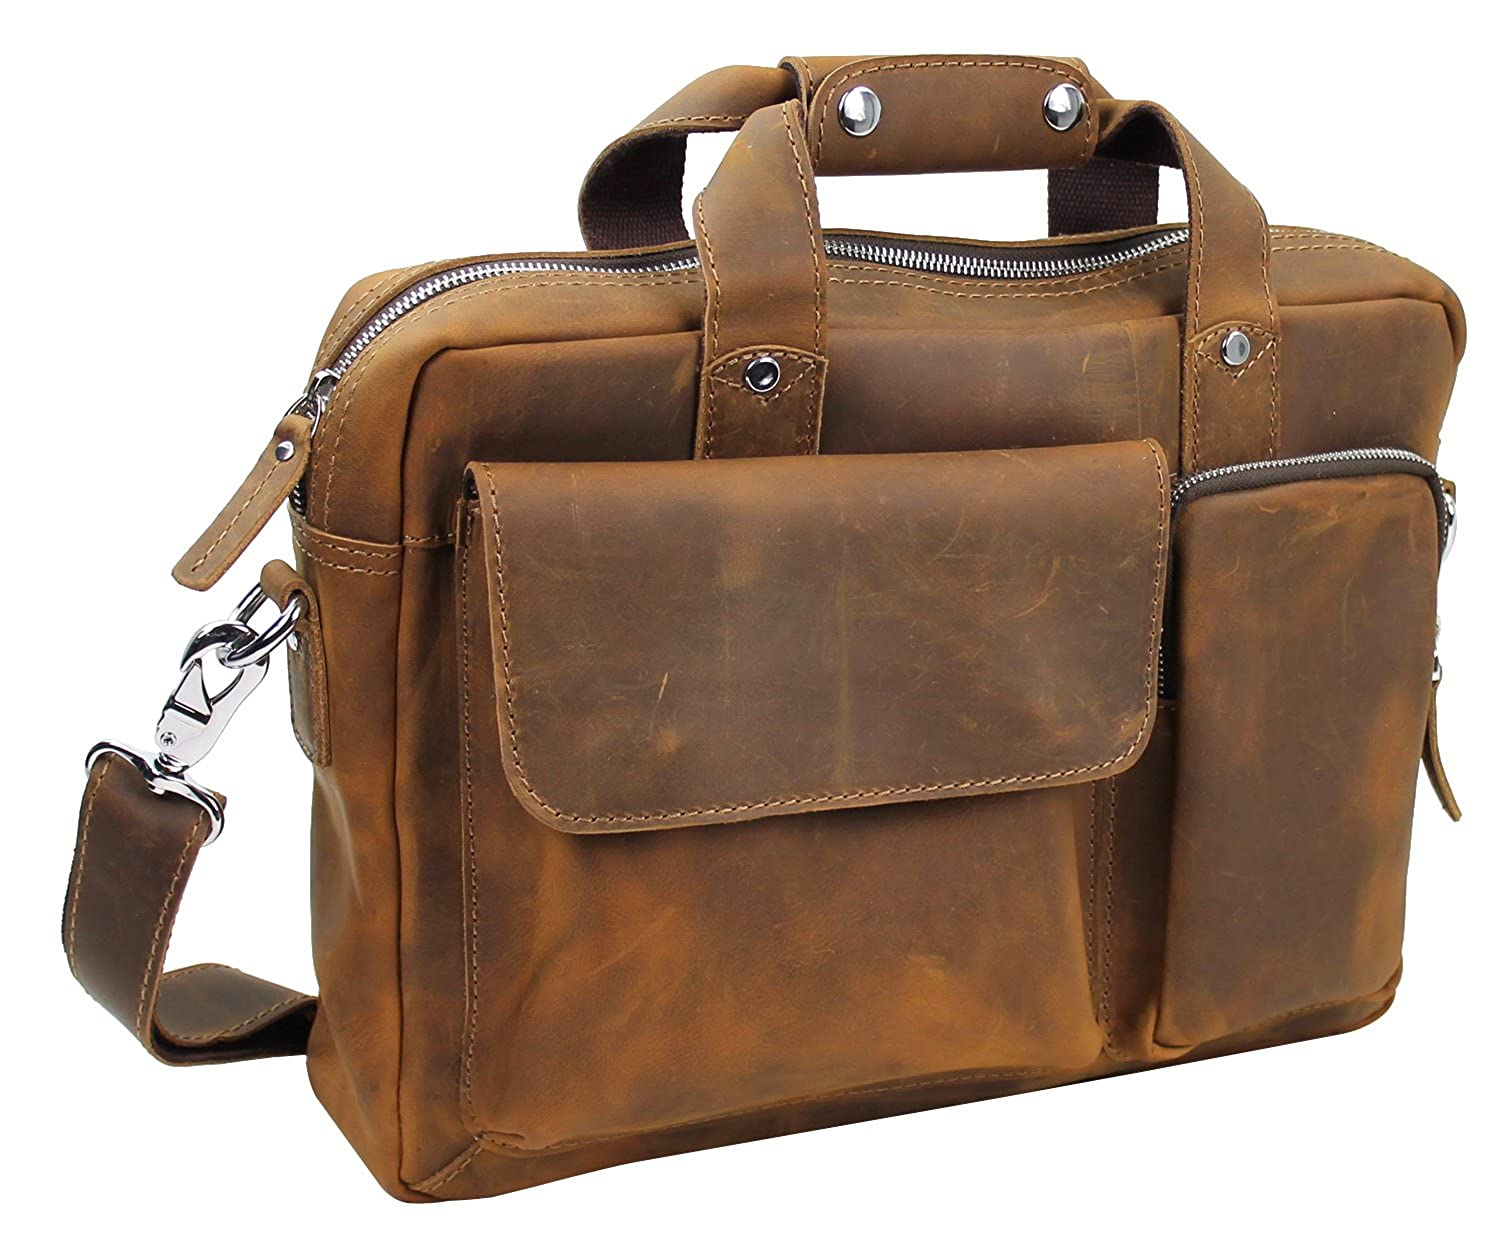 Vagabond Traveler Cowhide Leather Casual Messenger Bag L23 B073SB3SXD